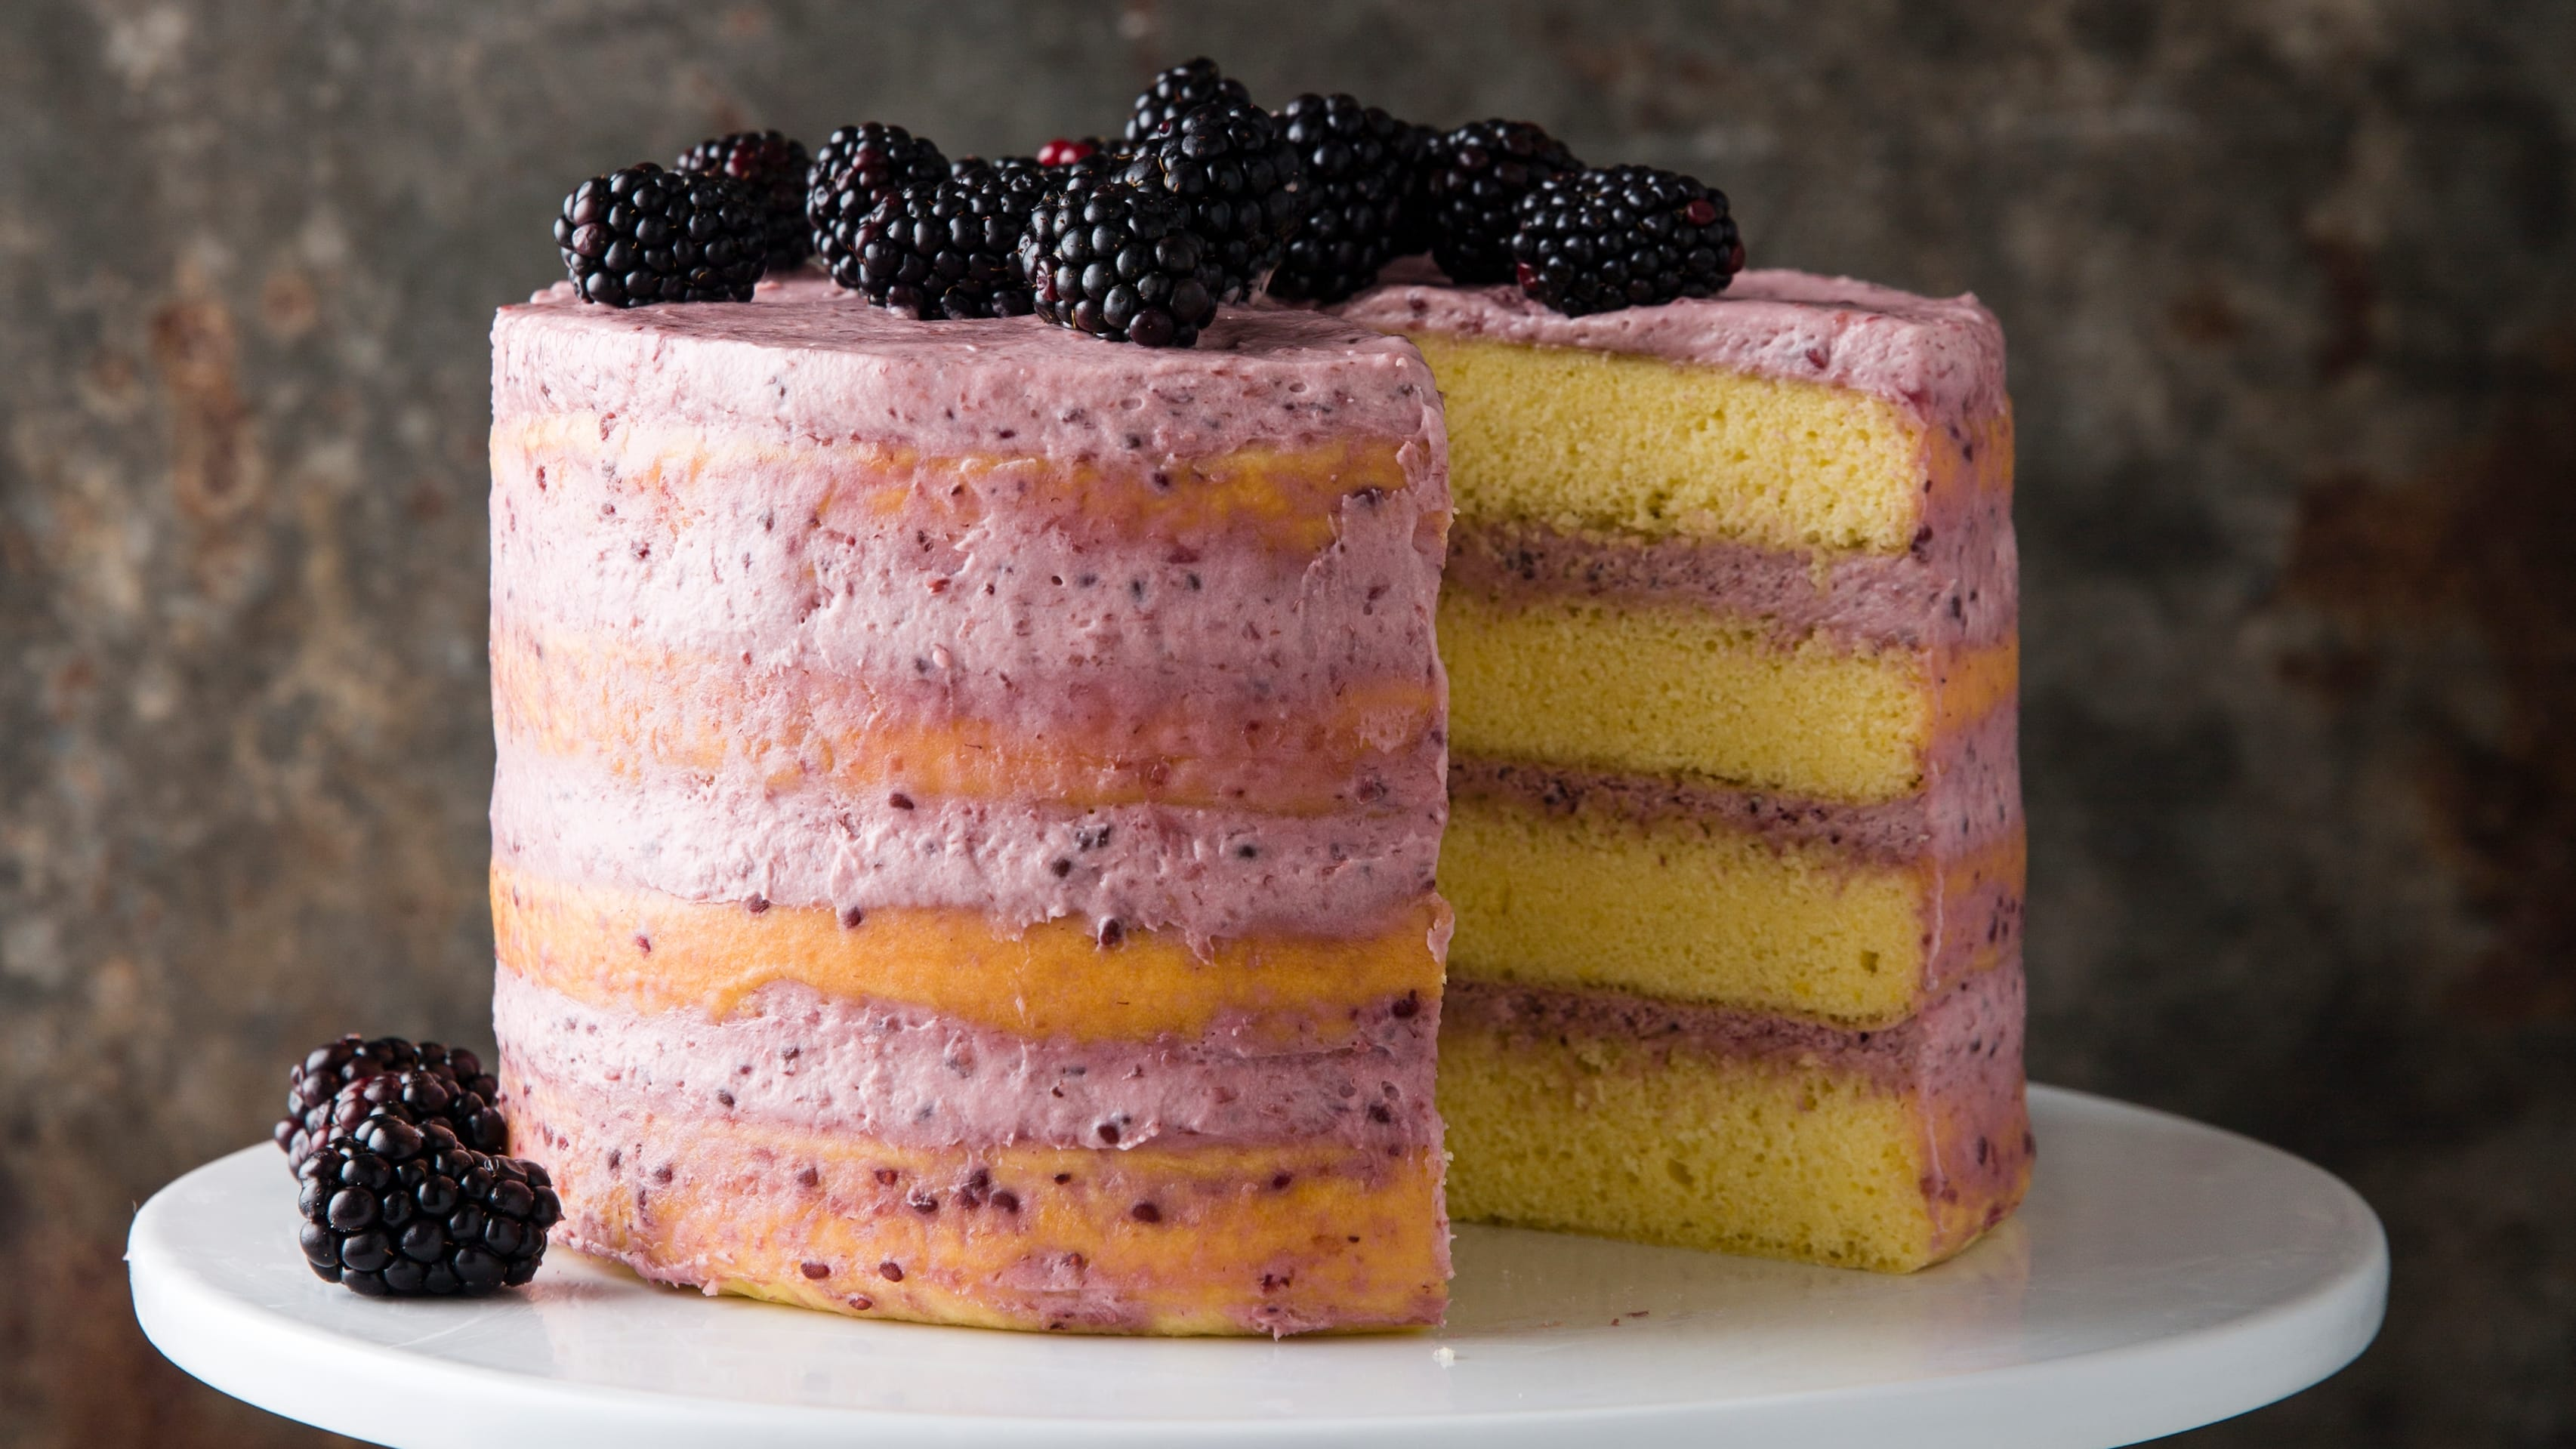 Blackberry-Mascarpone Lemon Cake | The Perfect Cake